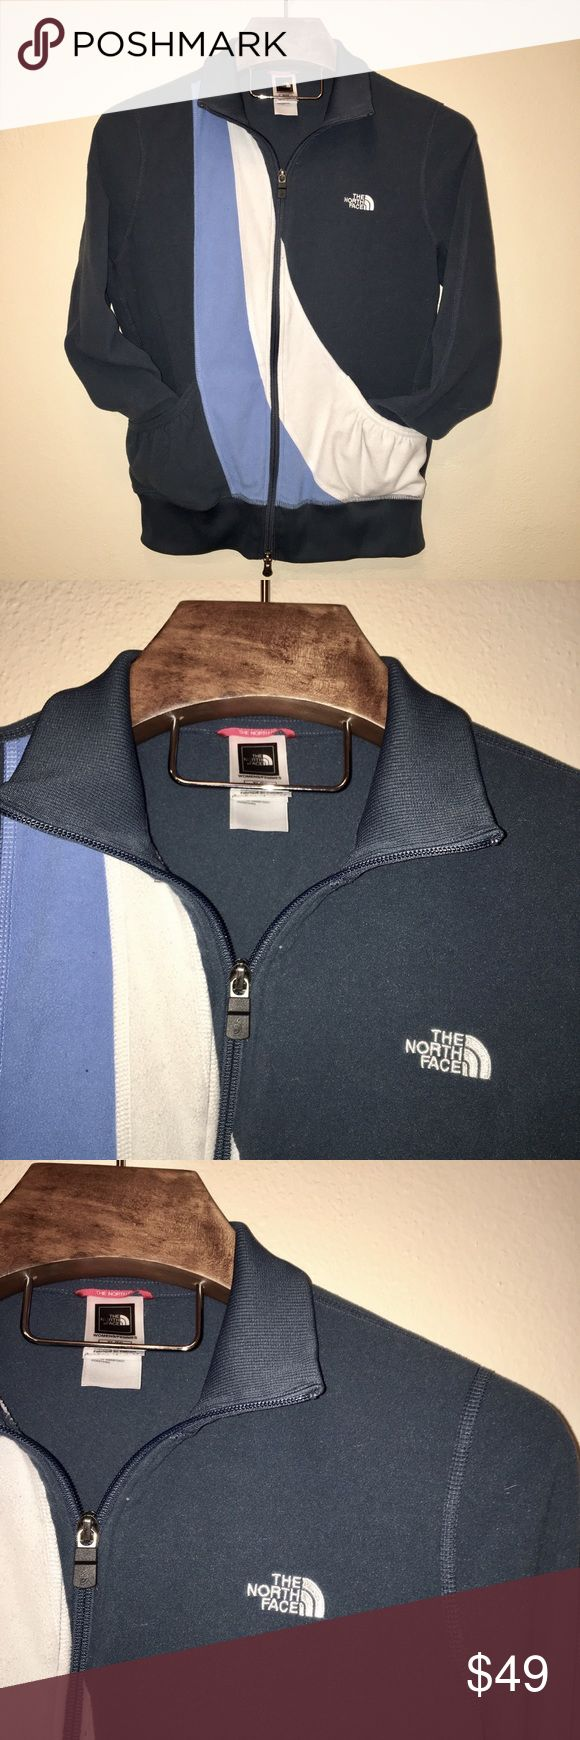 The North Face Women's Zip Up Fleece Jacket Fleece double zipper jacket by The North Face. Women's size XL. Navy blue with sky blue and white accents. Two front pockets. 100% Polyester. Super soft and warm. In excellent condition! The North Face Tops Sweatshirts & Hoodies